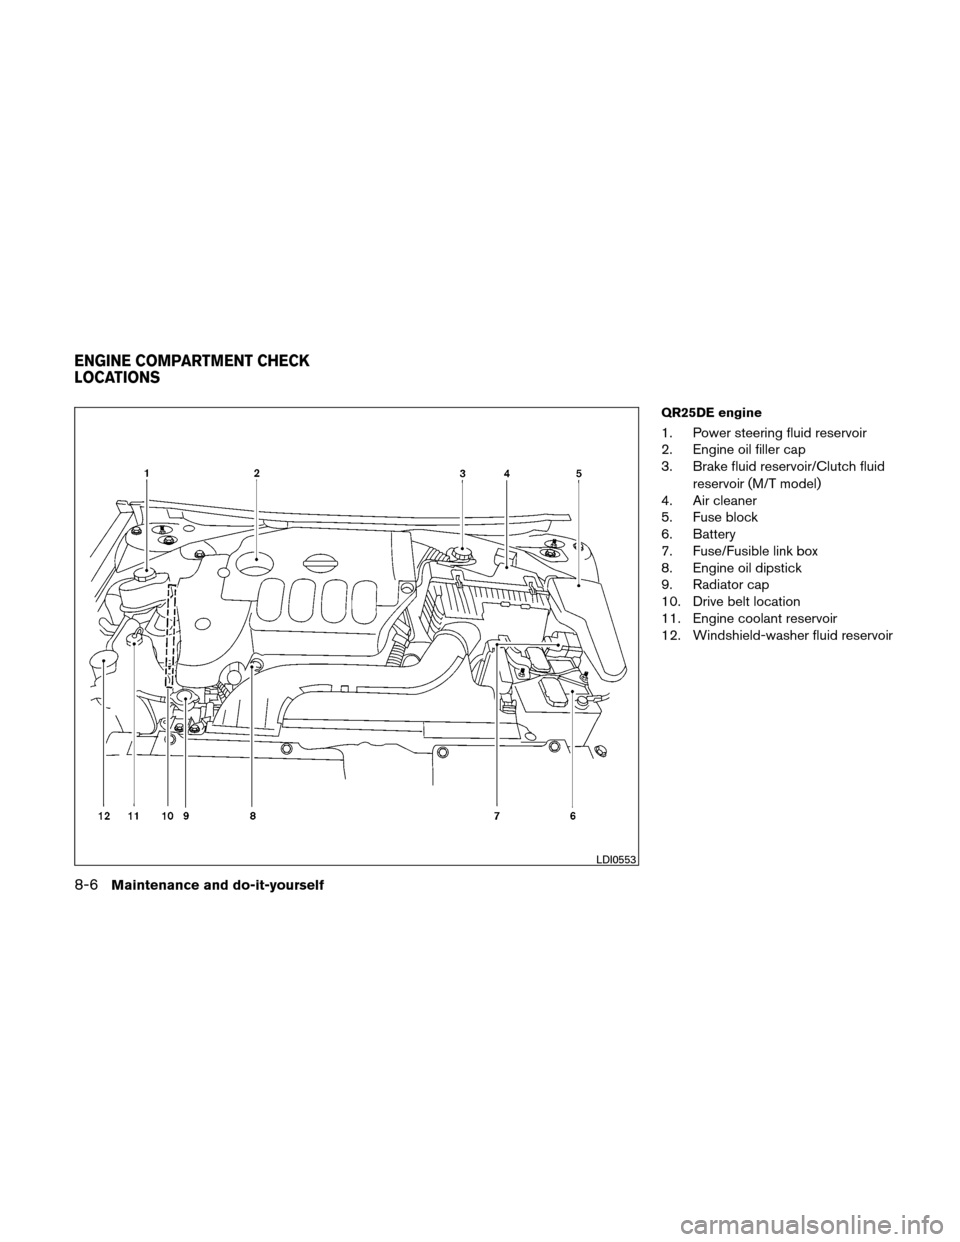 NISSAN ALTIMA COUPE 2011 D32 / 4.G Owners Manual, Page 365